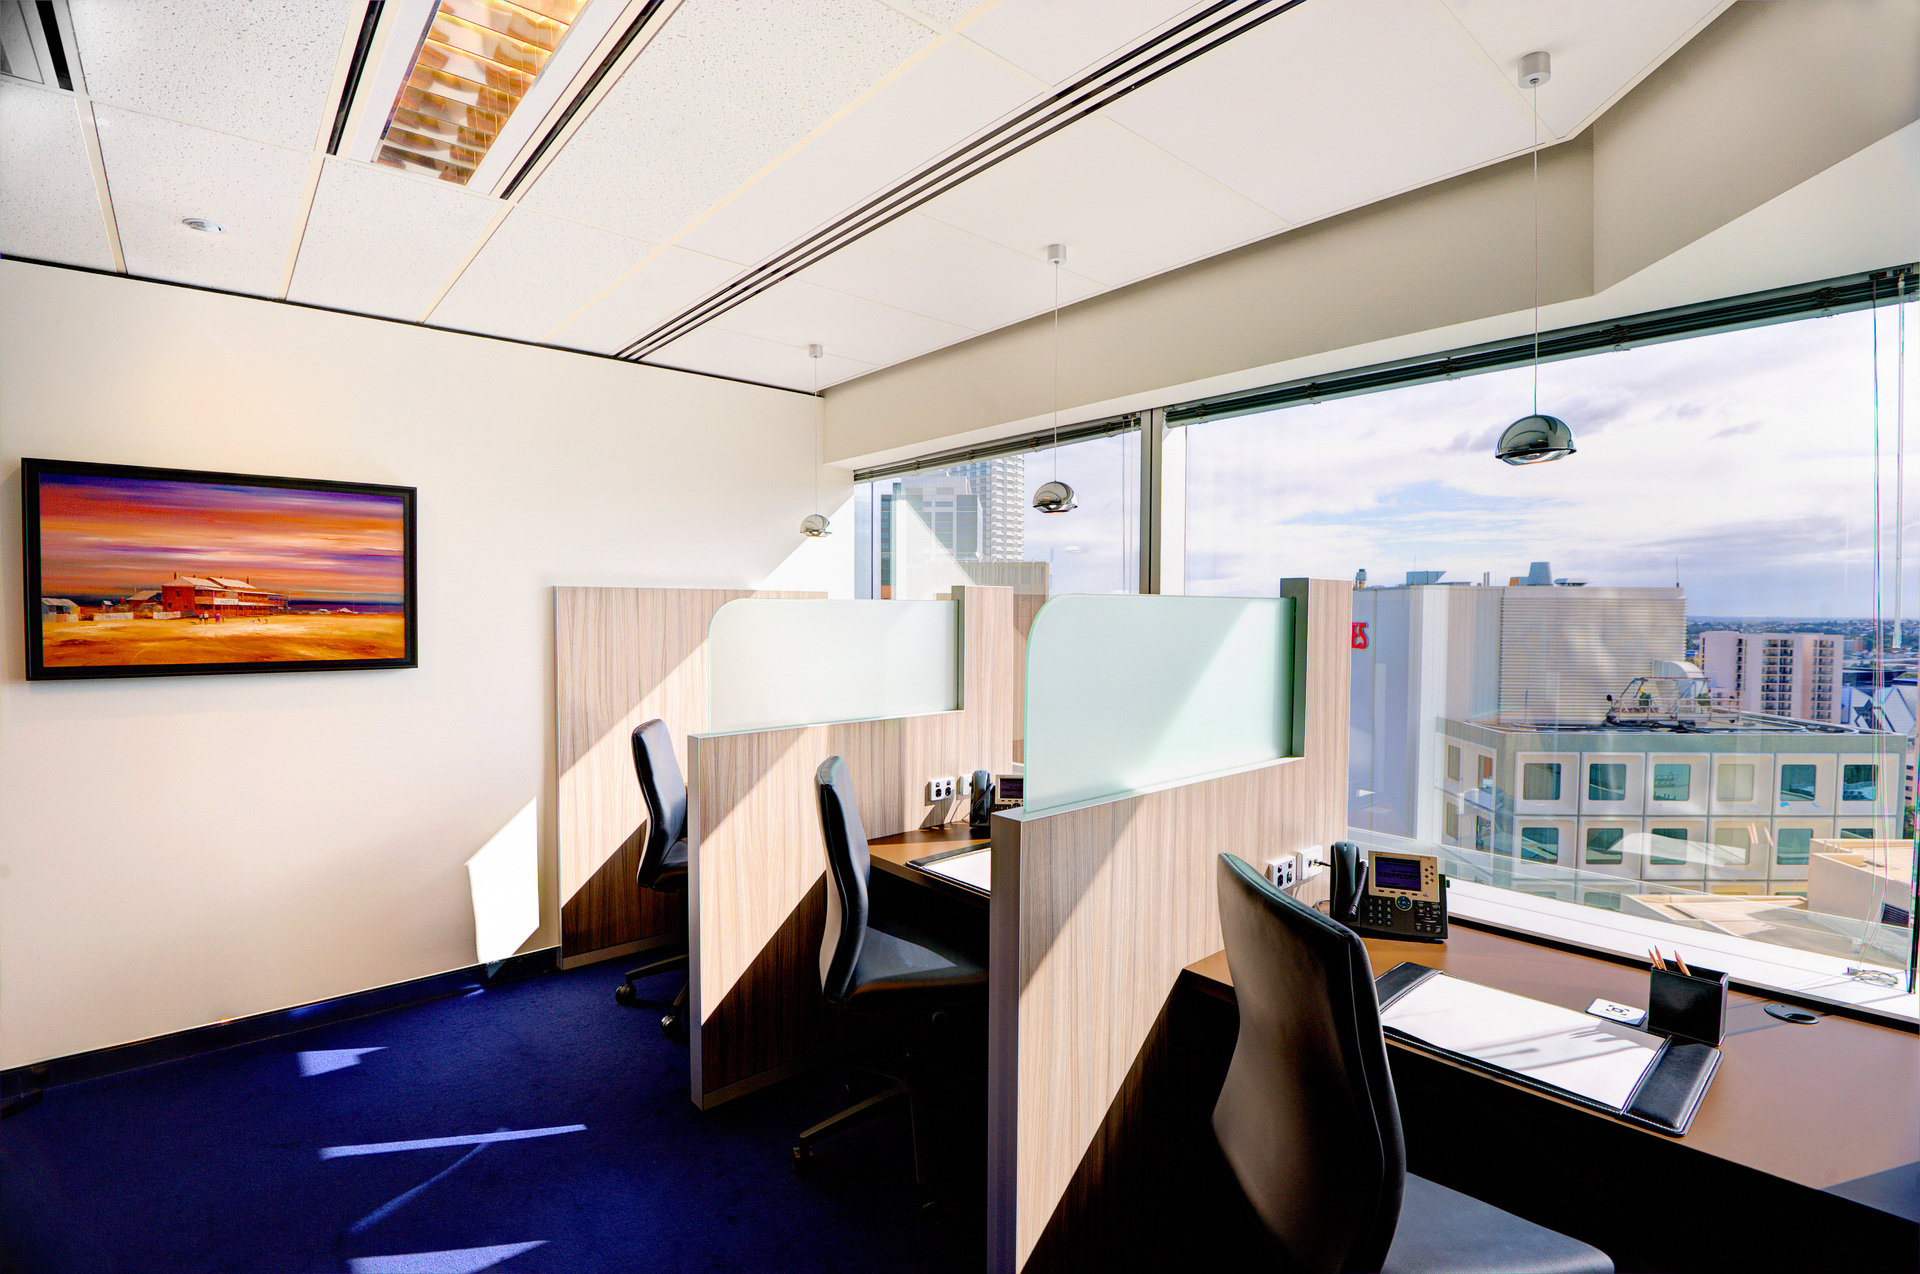 HIGH-QUALITY OFFICE SPACE THAT PROVIDE A WORLD CLASS EQUIPEMENT WITH WONDERFUL VIEWS